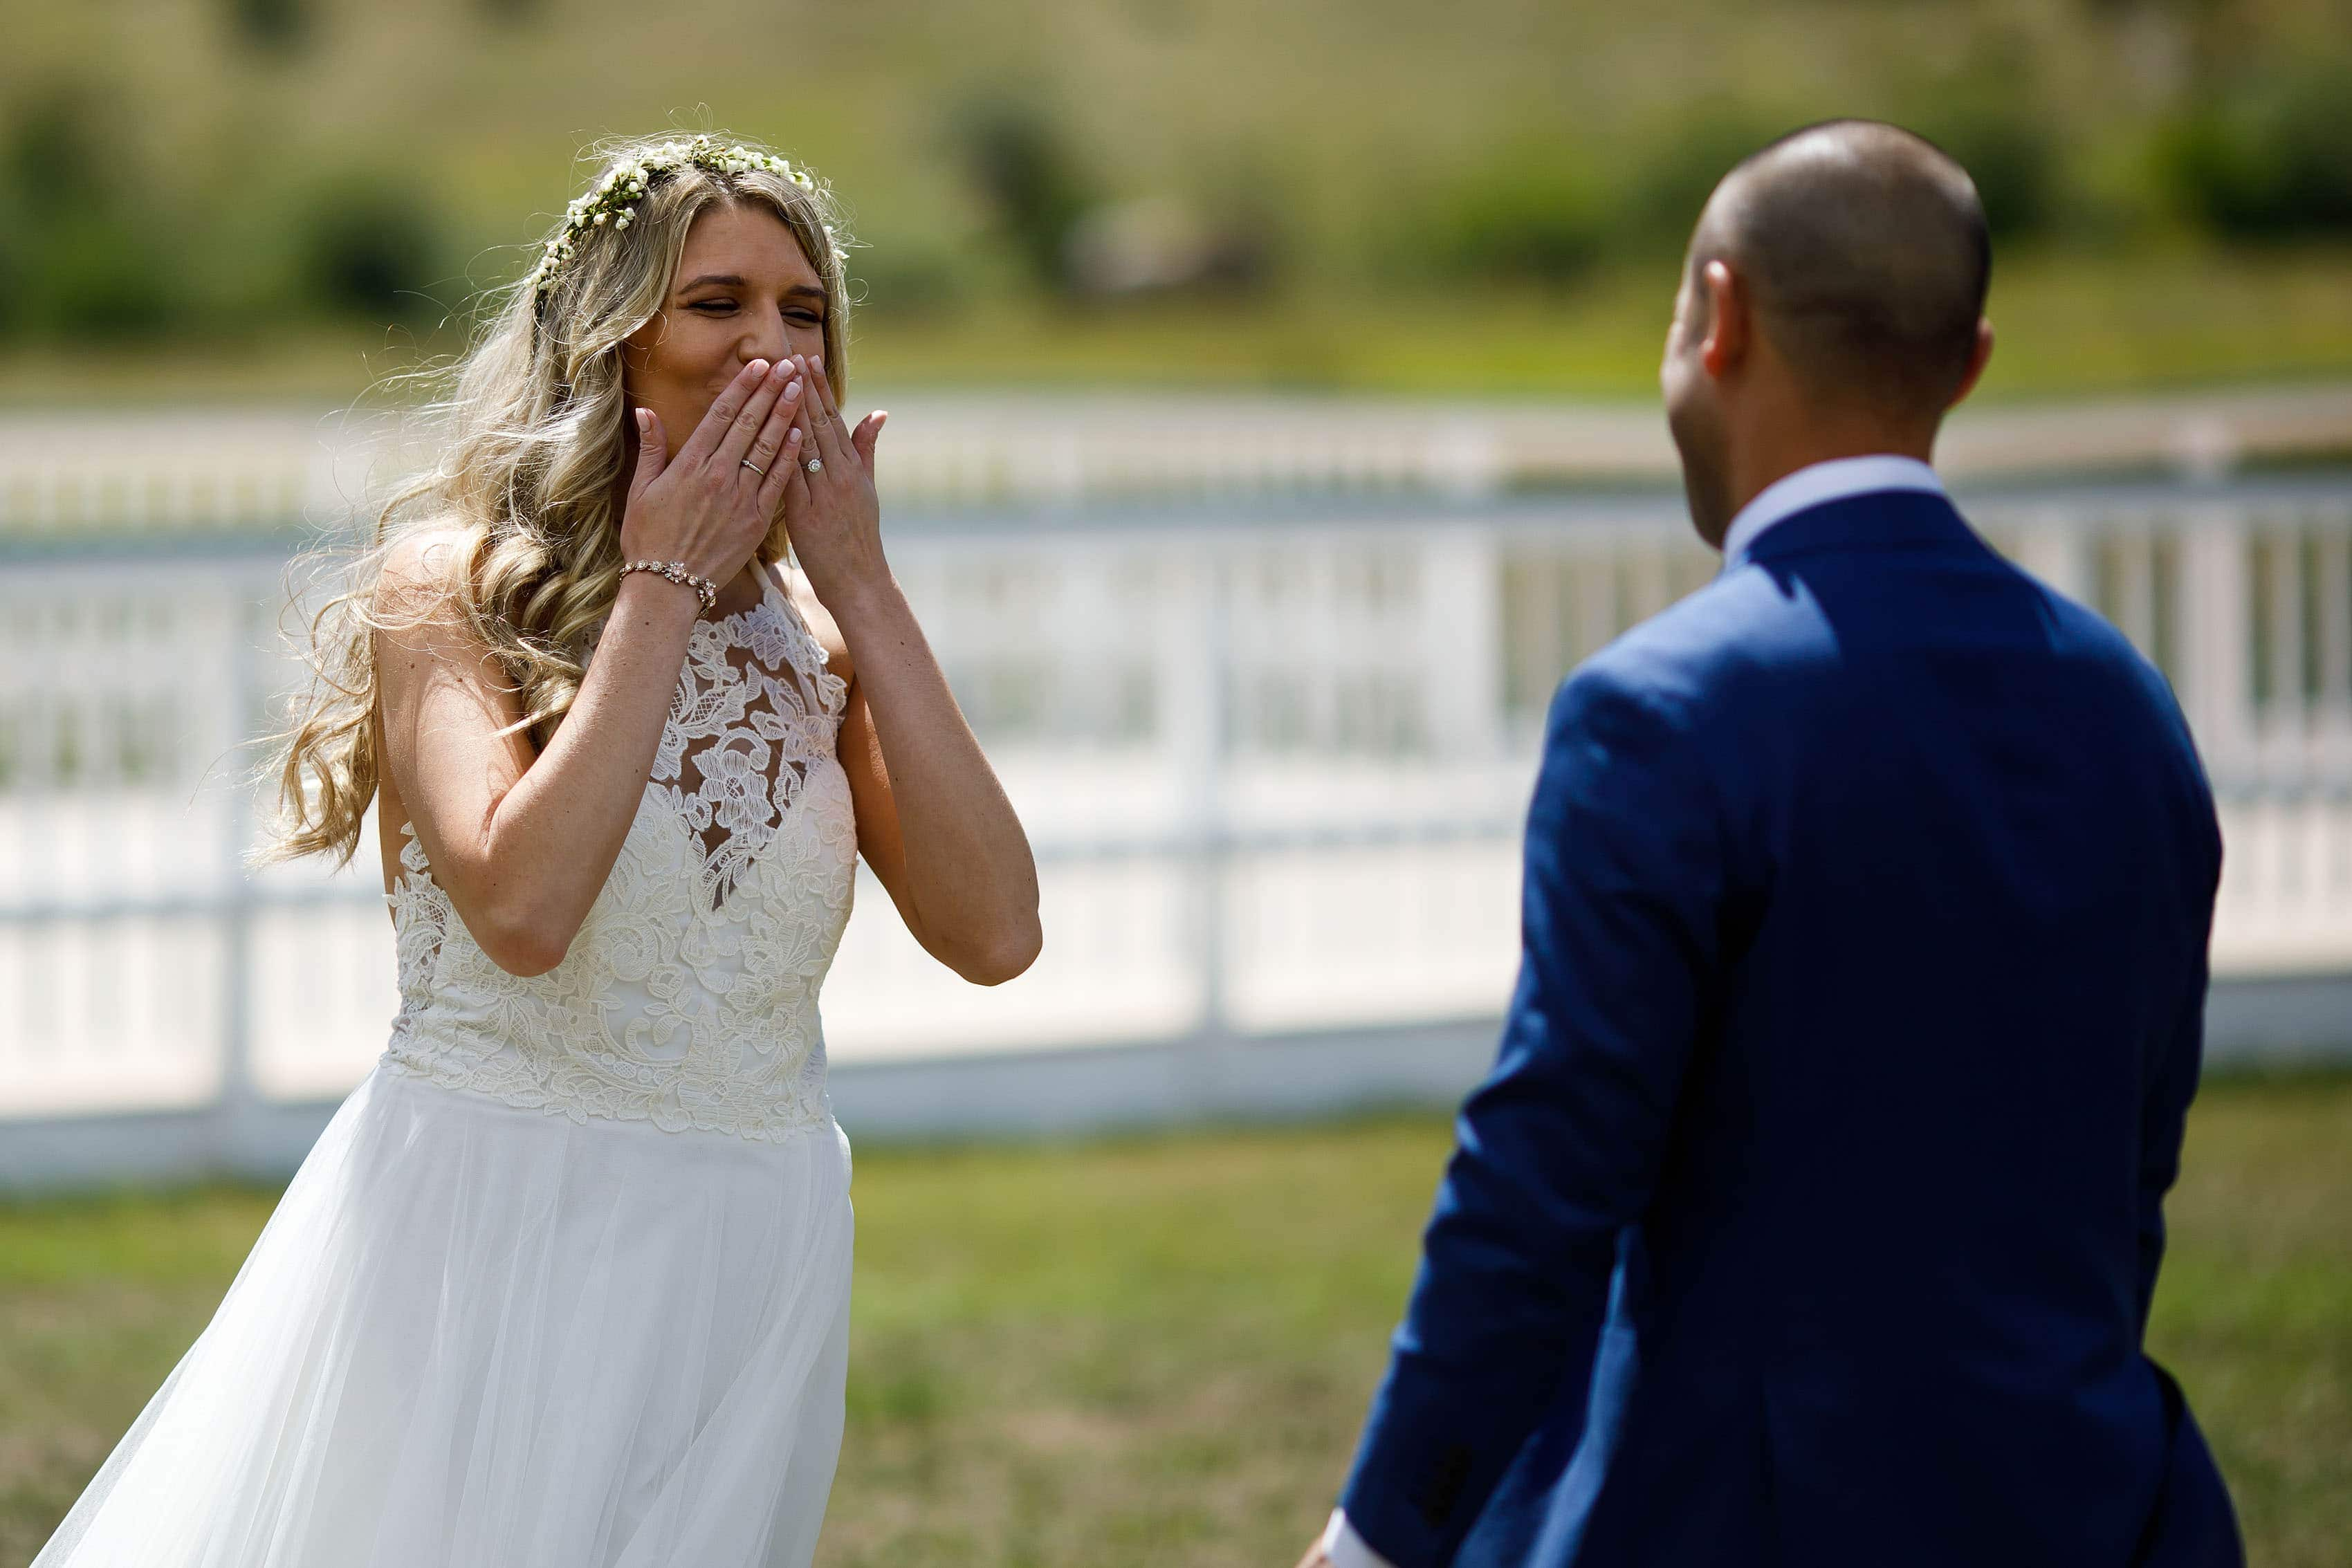 The bride reacts to seeing her groom